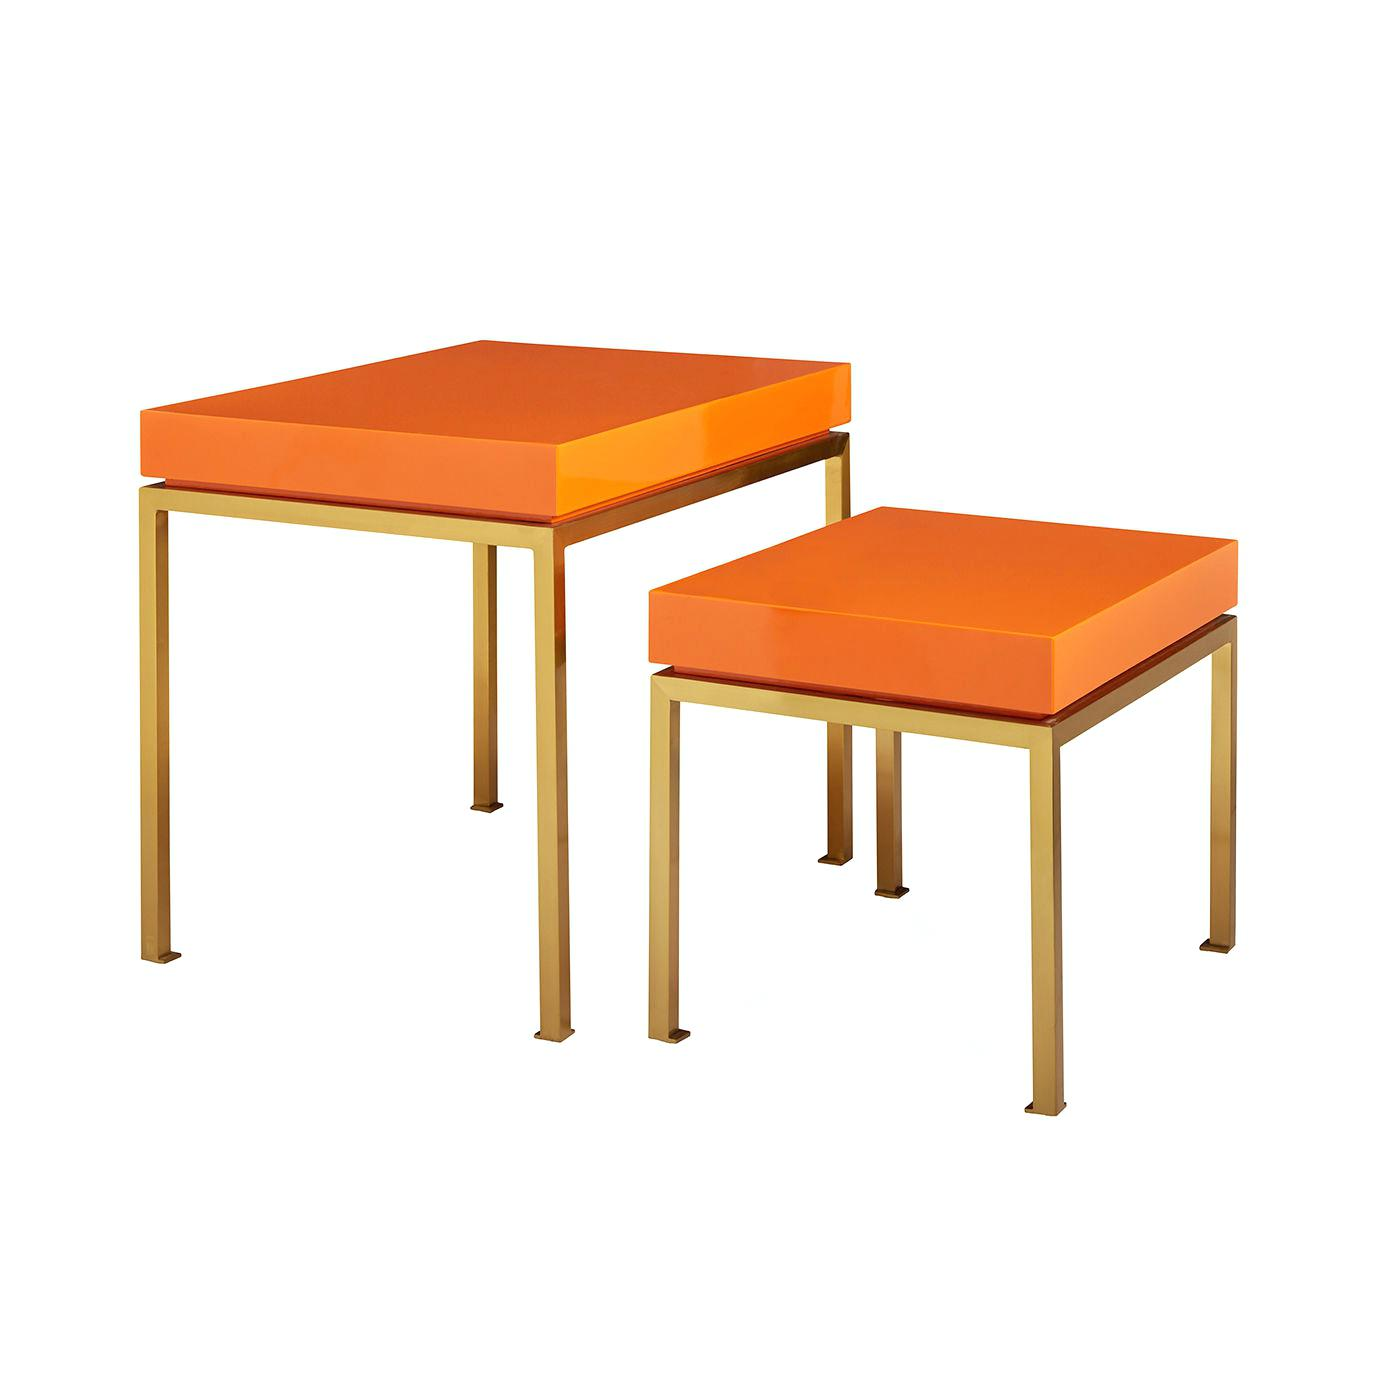 orange accent table ylg tall side alt outdoor metal threshold floor lamp antique tier mirrored bedroom wicker umbrella small square collapsible trestle windham furniture